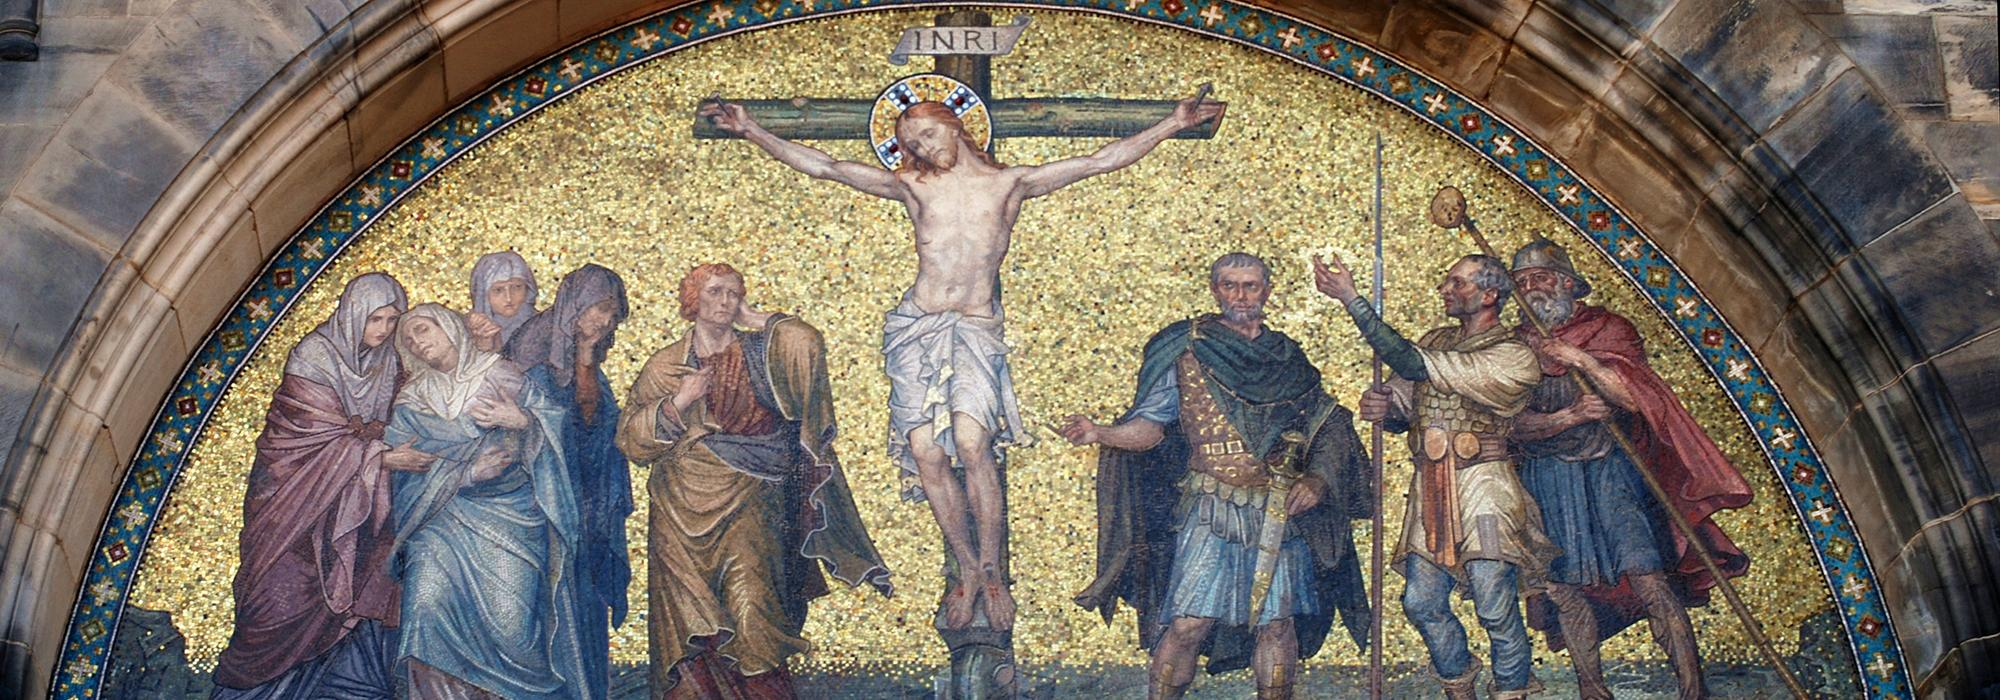 Mosaic on the facade of Bremen Cathedral showing the crucifixion of Christ - Photo: © Joaquim Alves Gaspar, via Wikimedia Commons, CC BY-SA 3.0